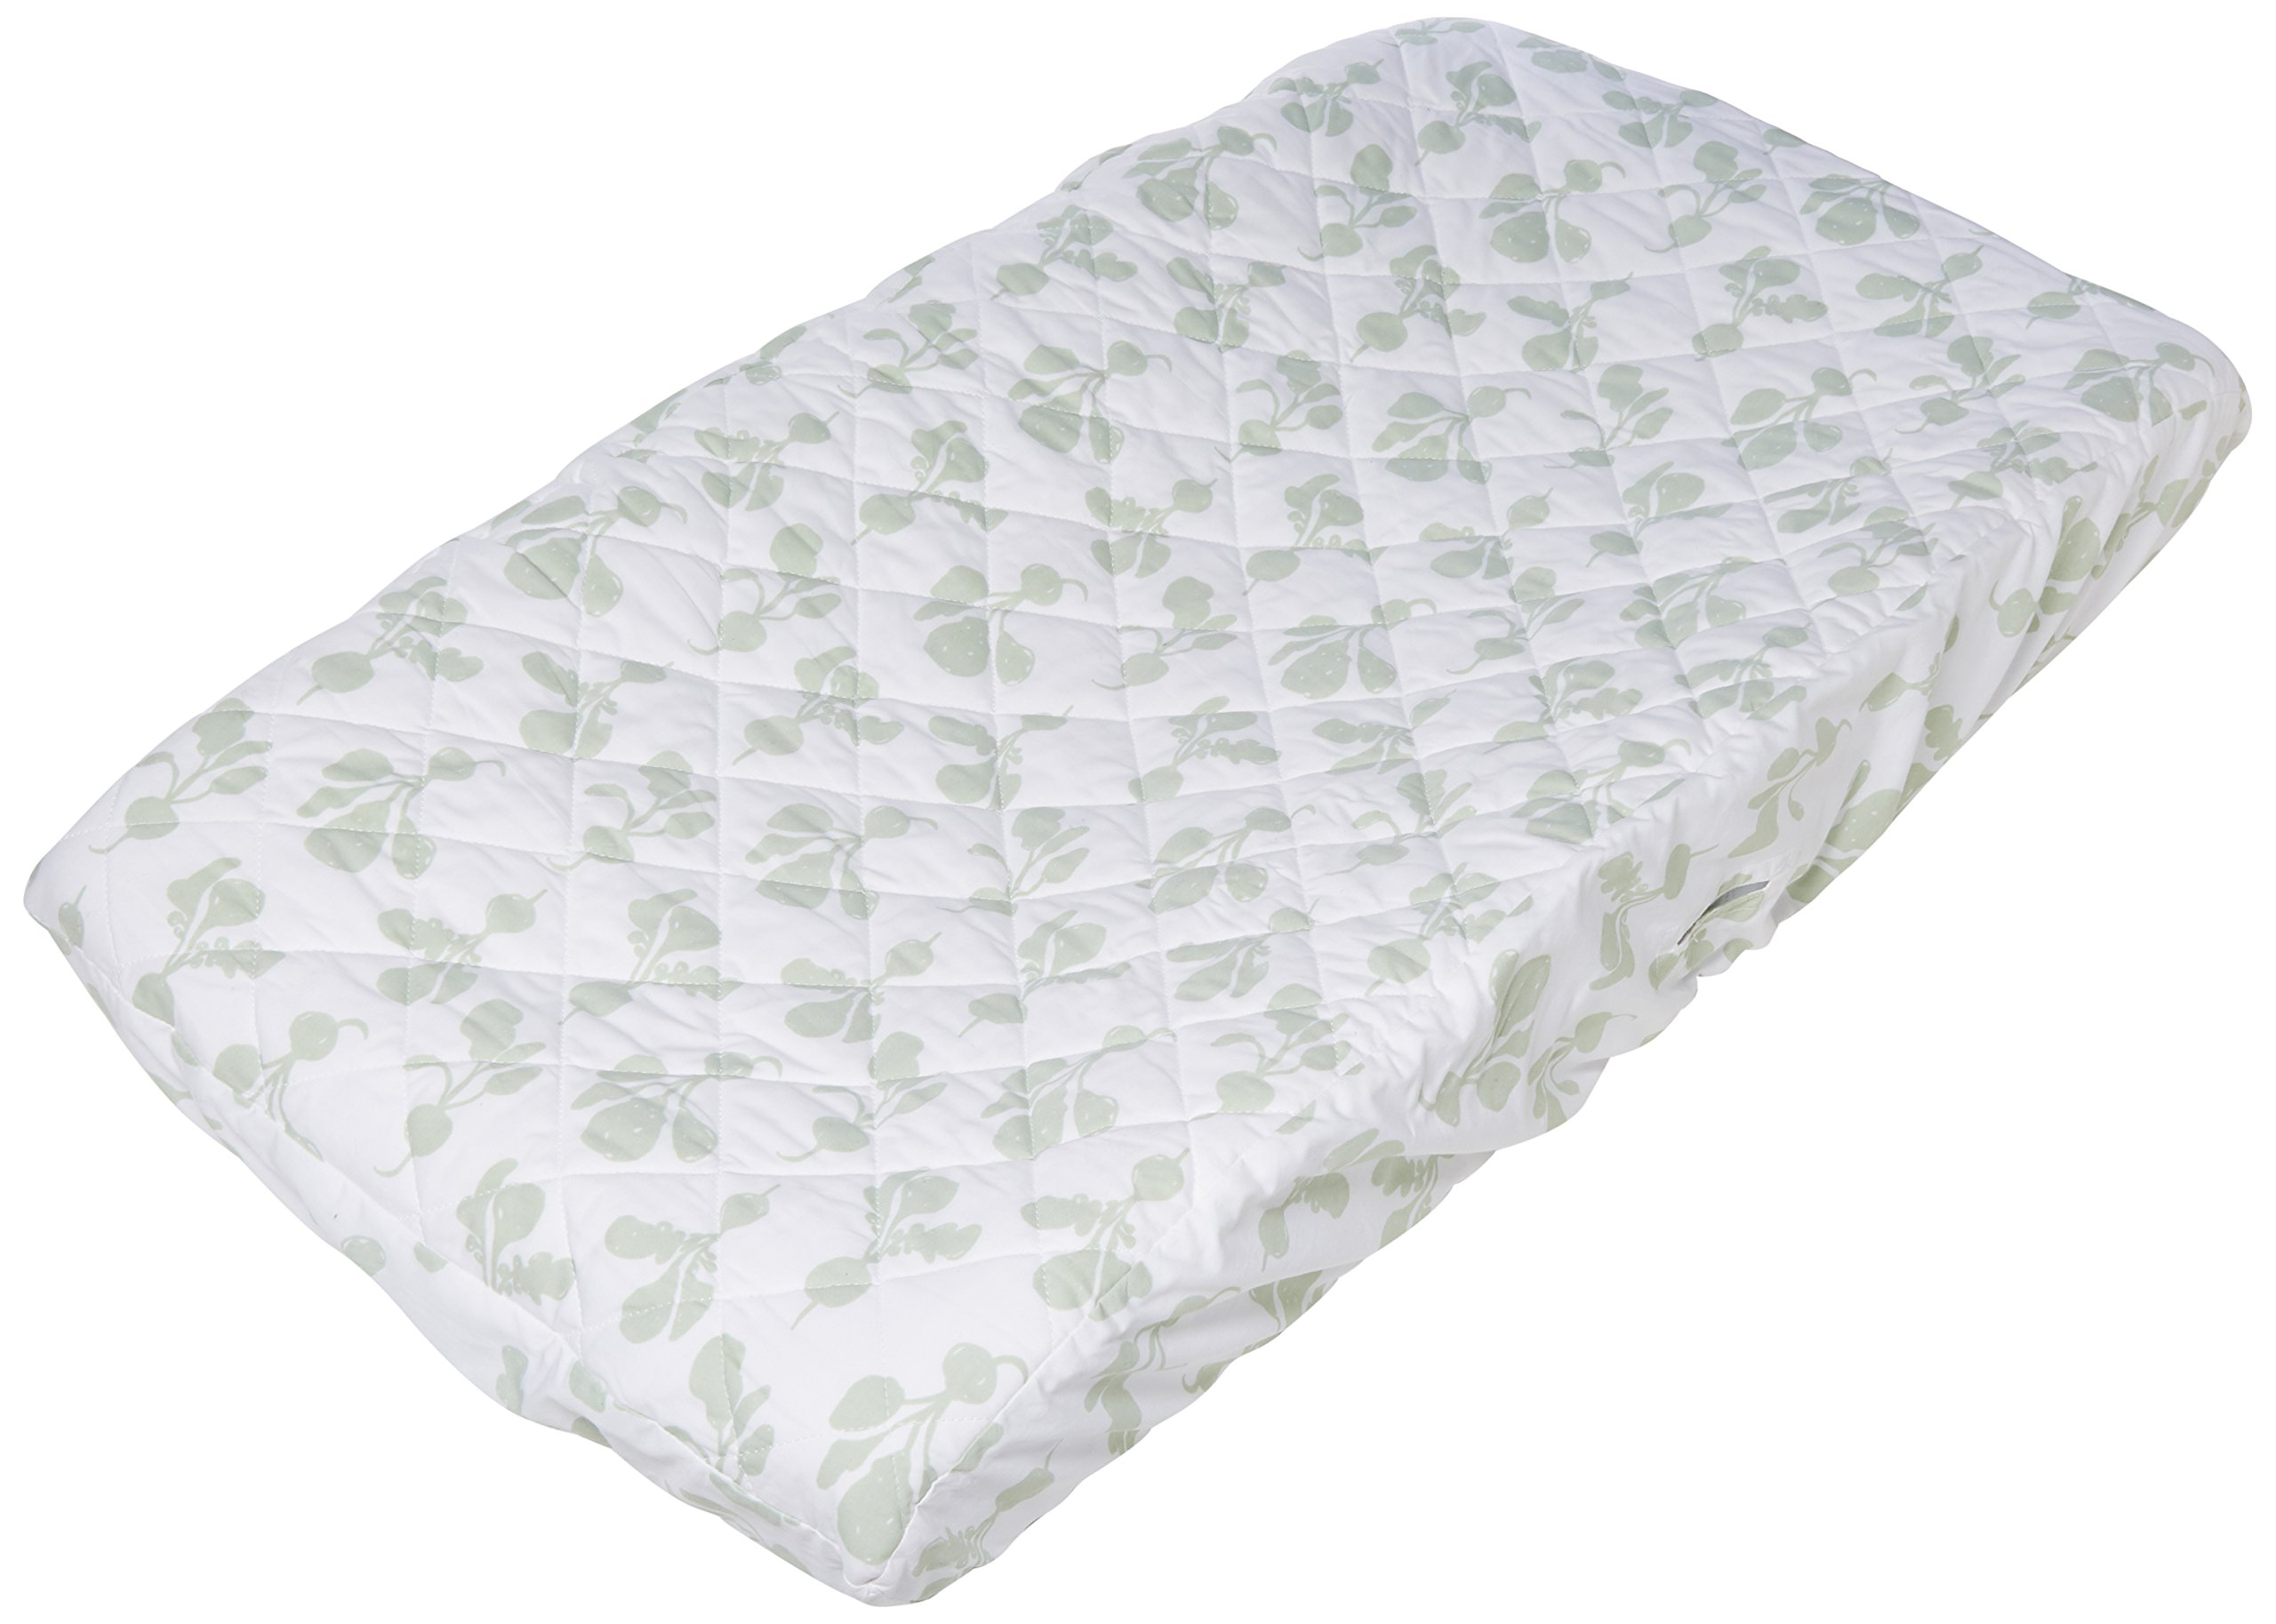 Lewis Quilted Organic Cotton Changing Pad Cover Radish Print 100% GOTS Certified Organic Cotton, Willow